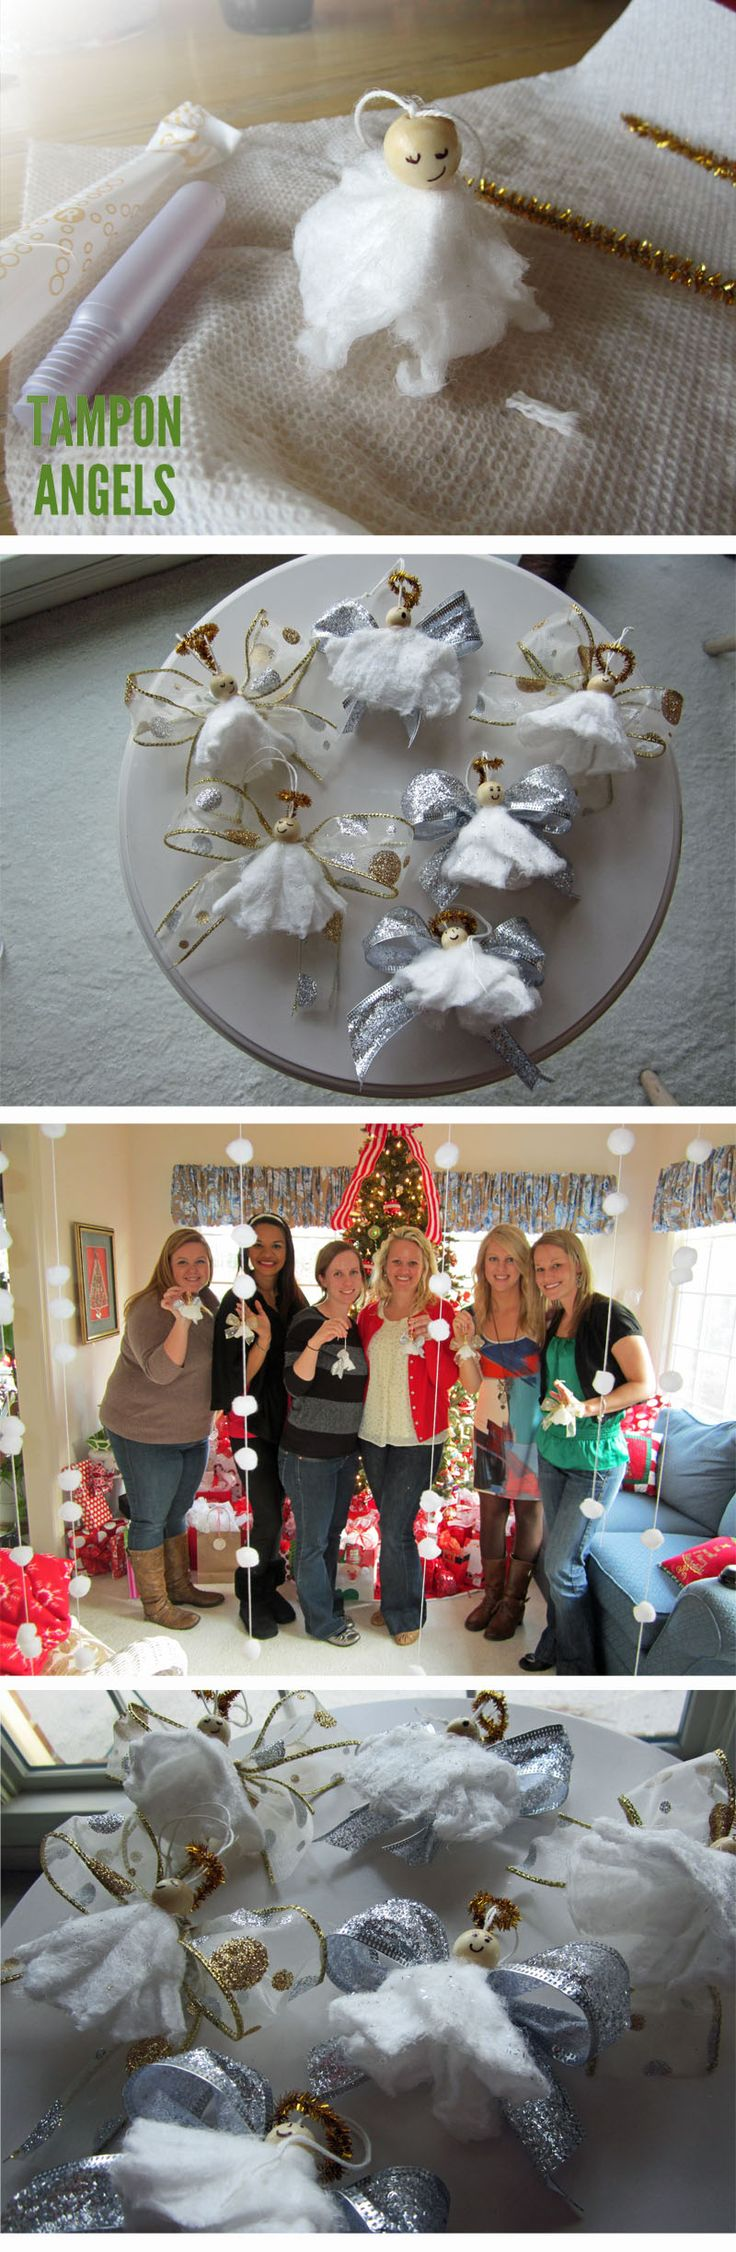 Tampon Angles!!!  How funny!!  at least that's a creative use for them ;0)